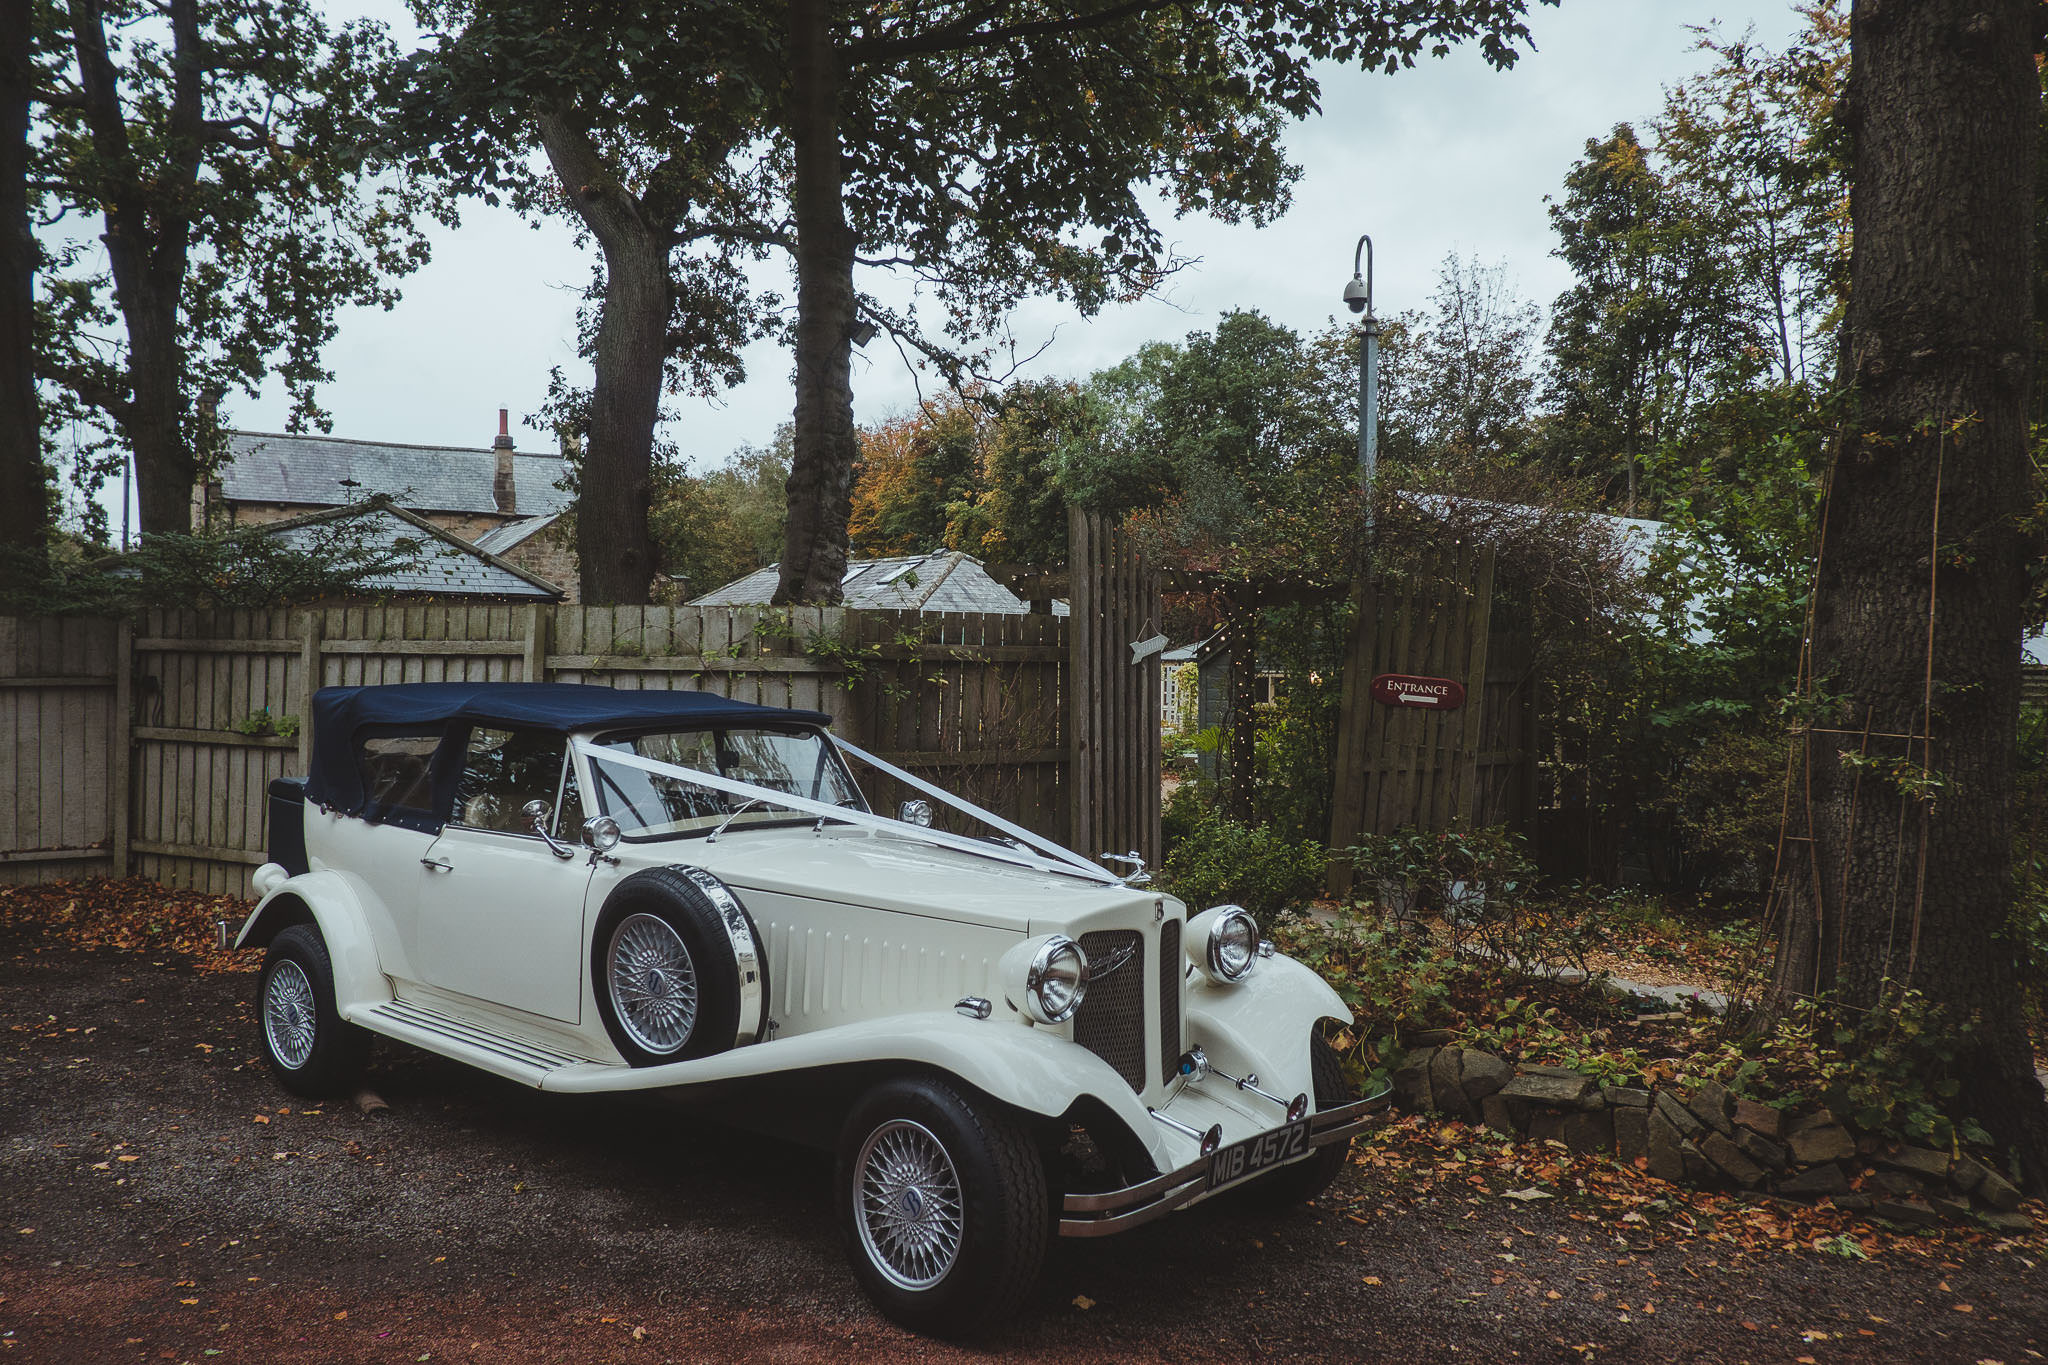 The wedding car parked up outside The Parlour at Blagdon on an autumn day